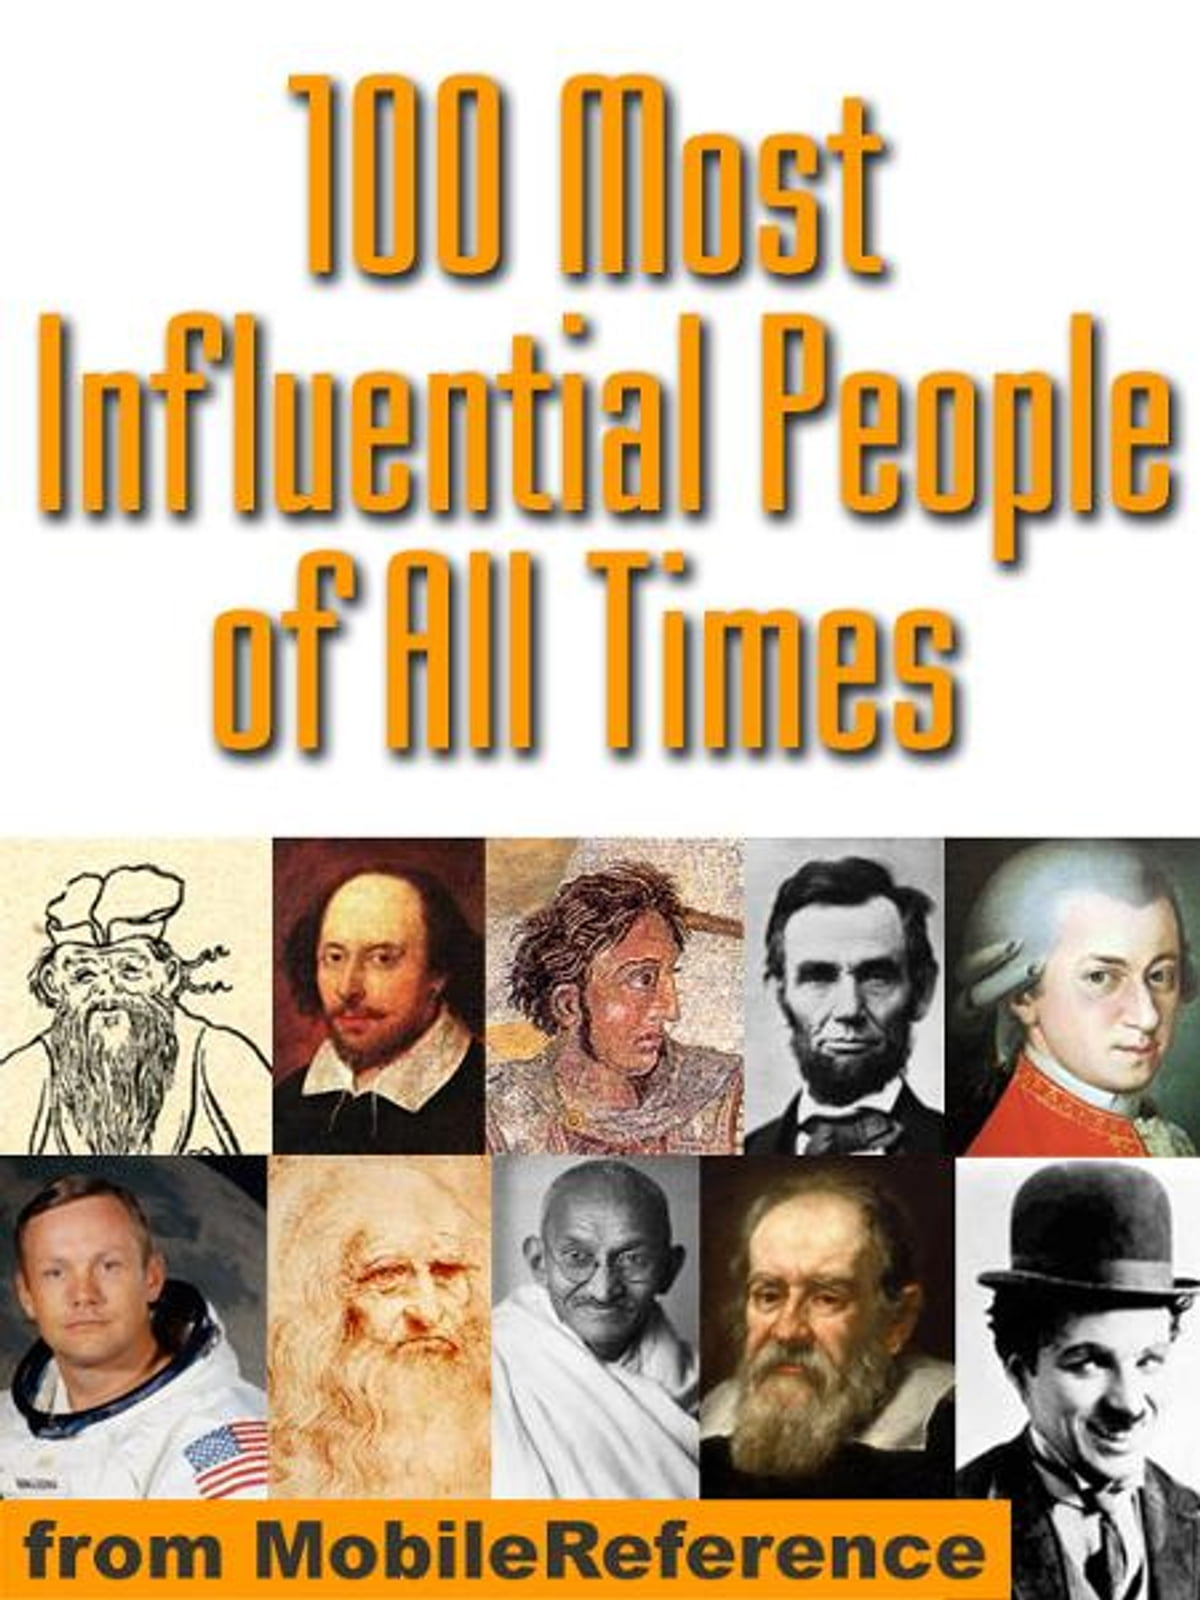 100 Most Influential People Of All Times (Mobi History) eBook by  MobileReference - 9781605011240 | Rakuten Kobo